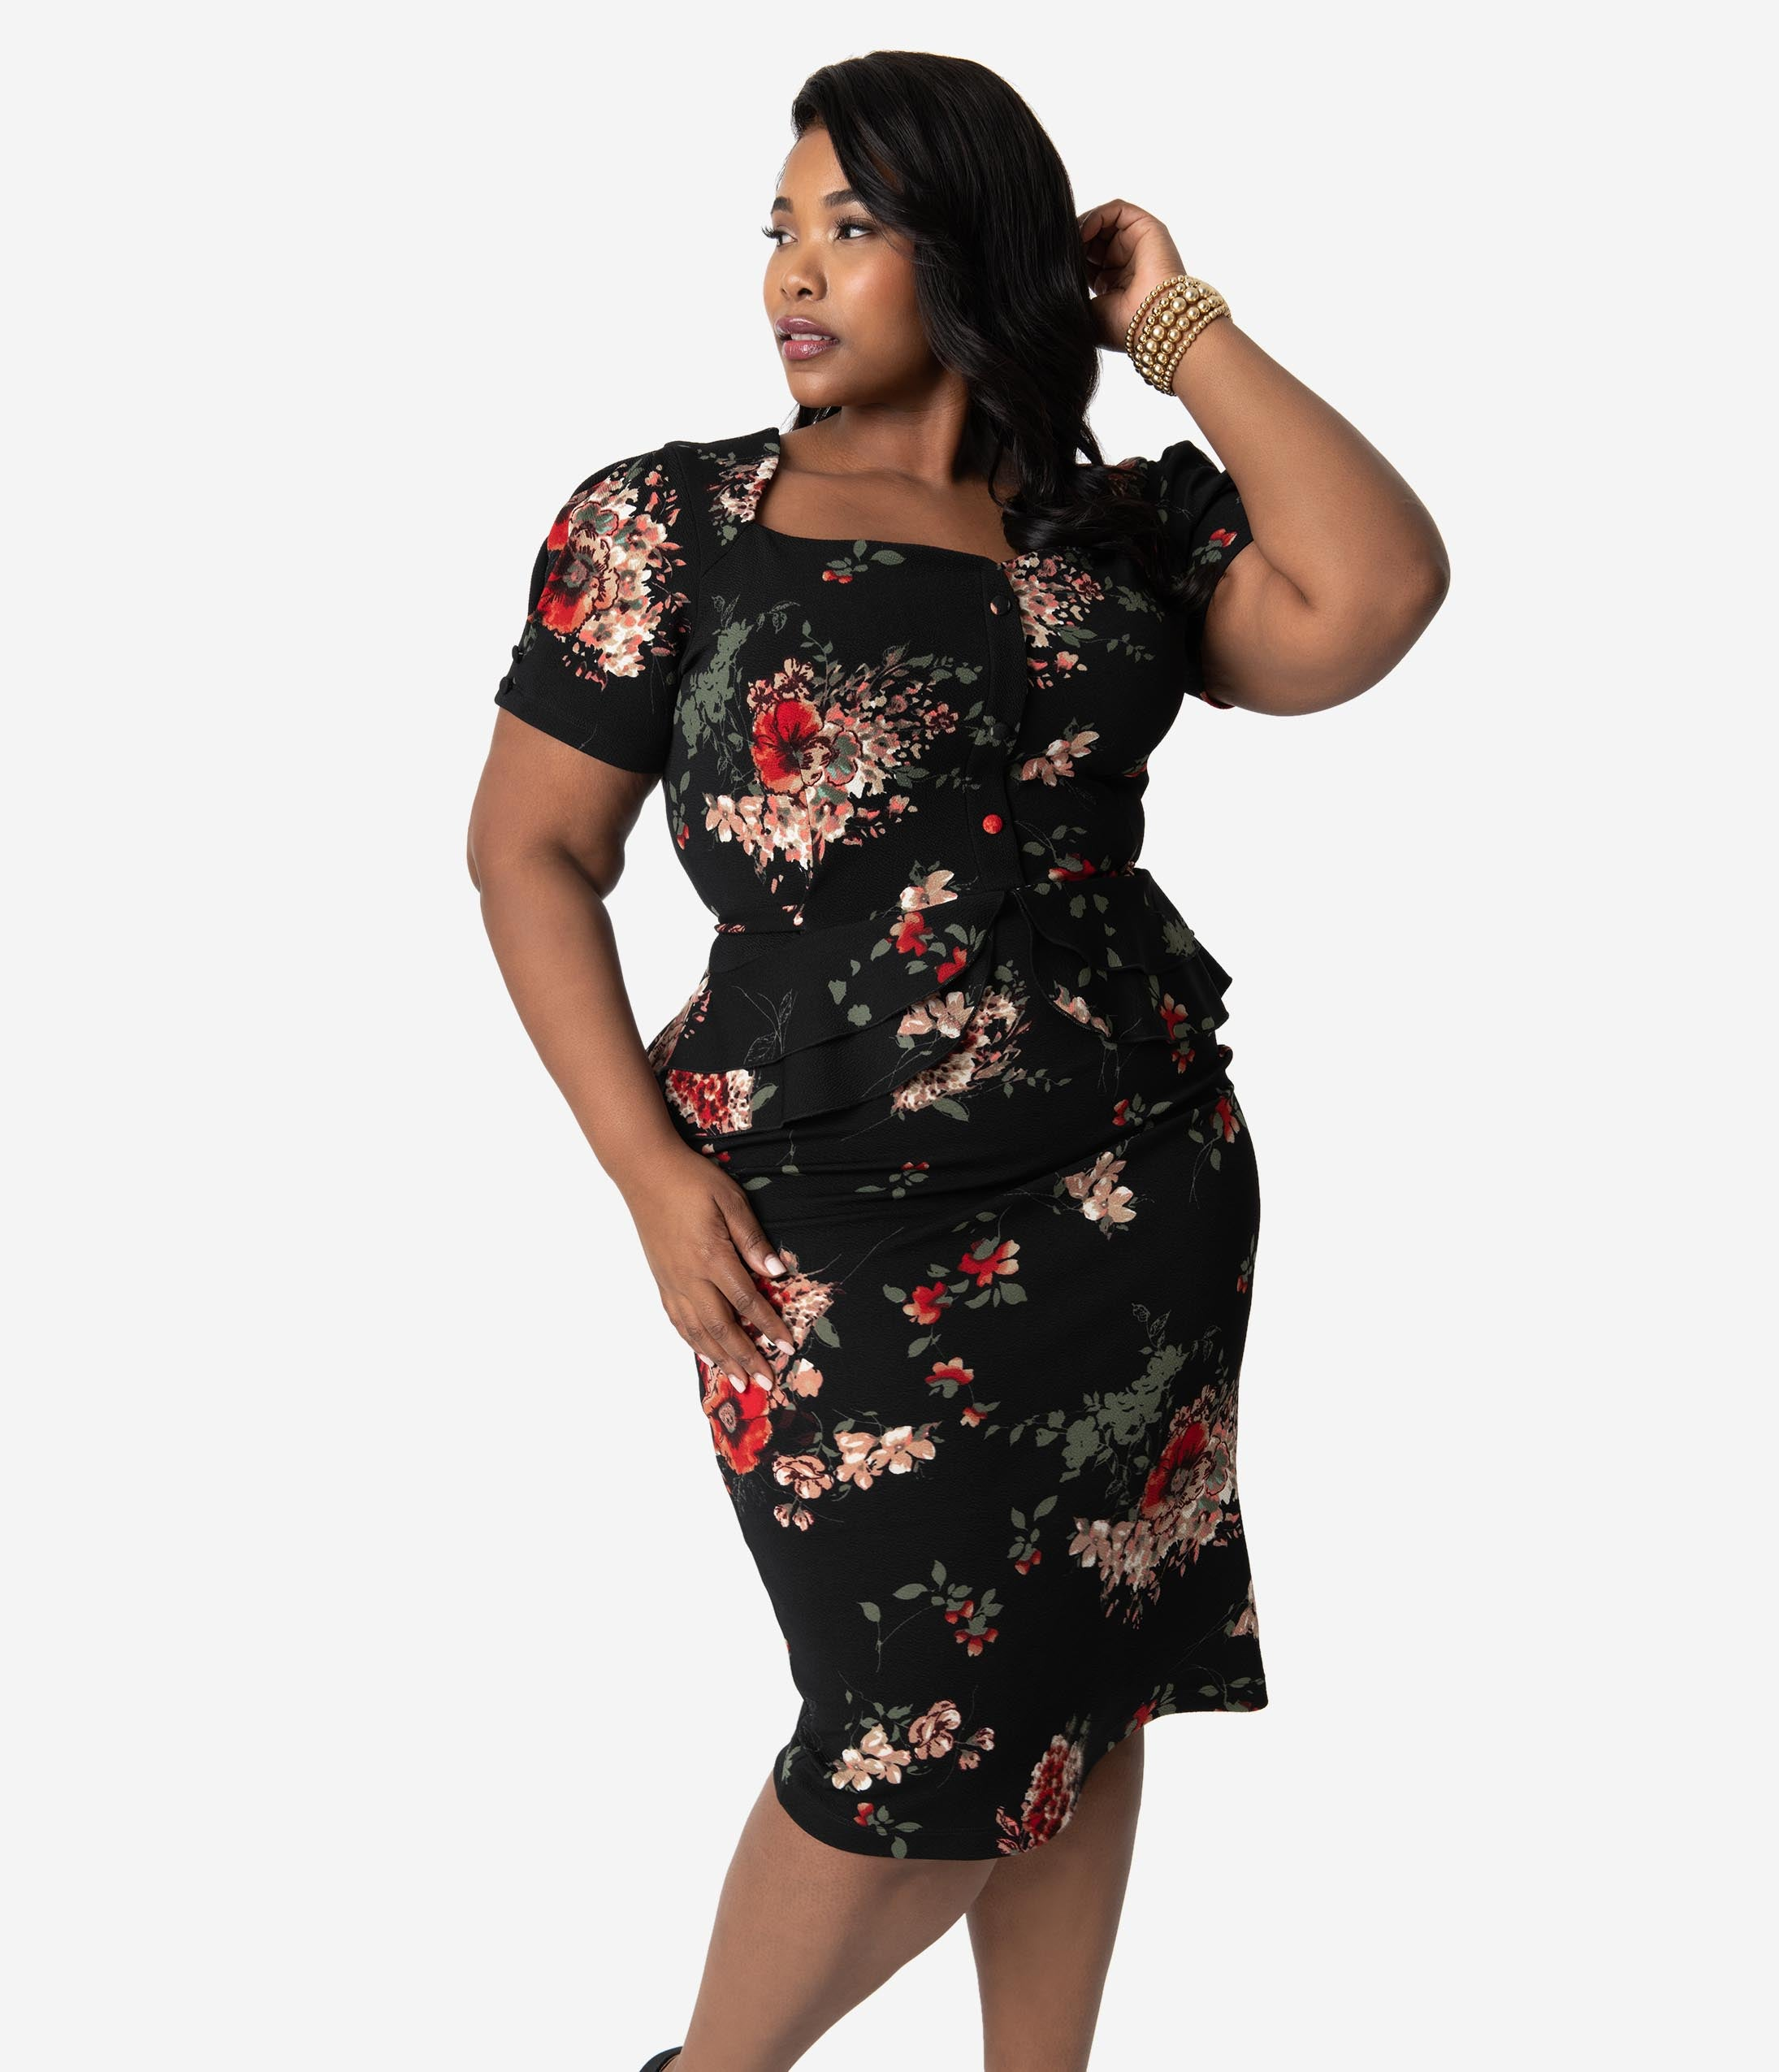 Rockabilly Dresses | Rockabilly Clothing | Viva Las Vegas Stop Staring Plus Size 1950S Black Floral Peplum Stretch Vital Wiggle Dress $141.00 AT vintagedancer.com